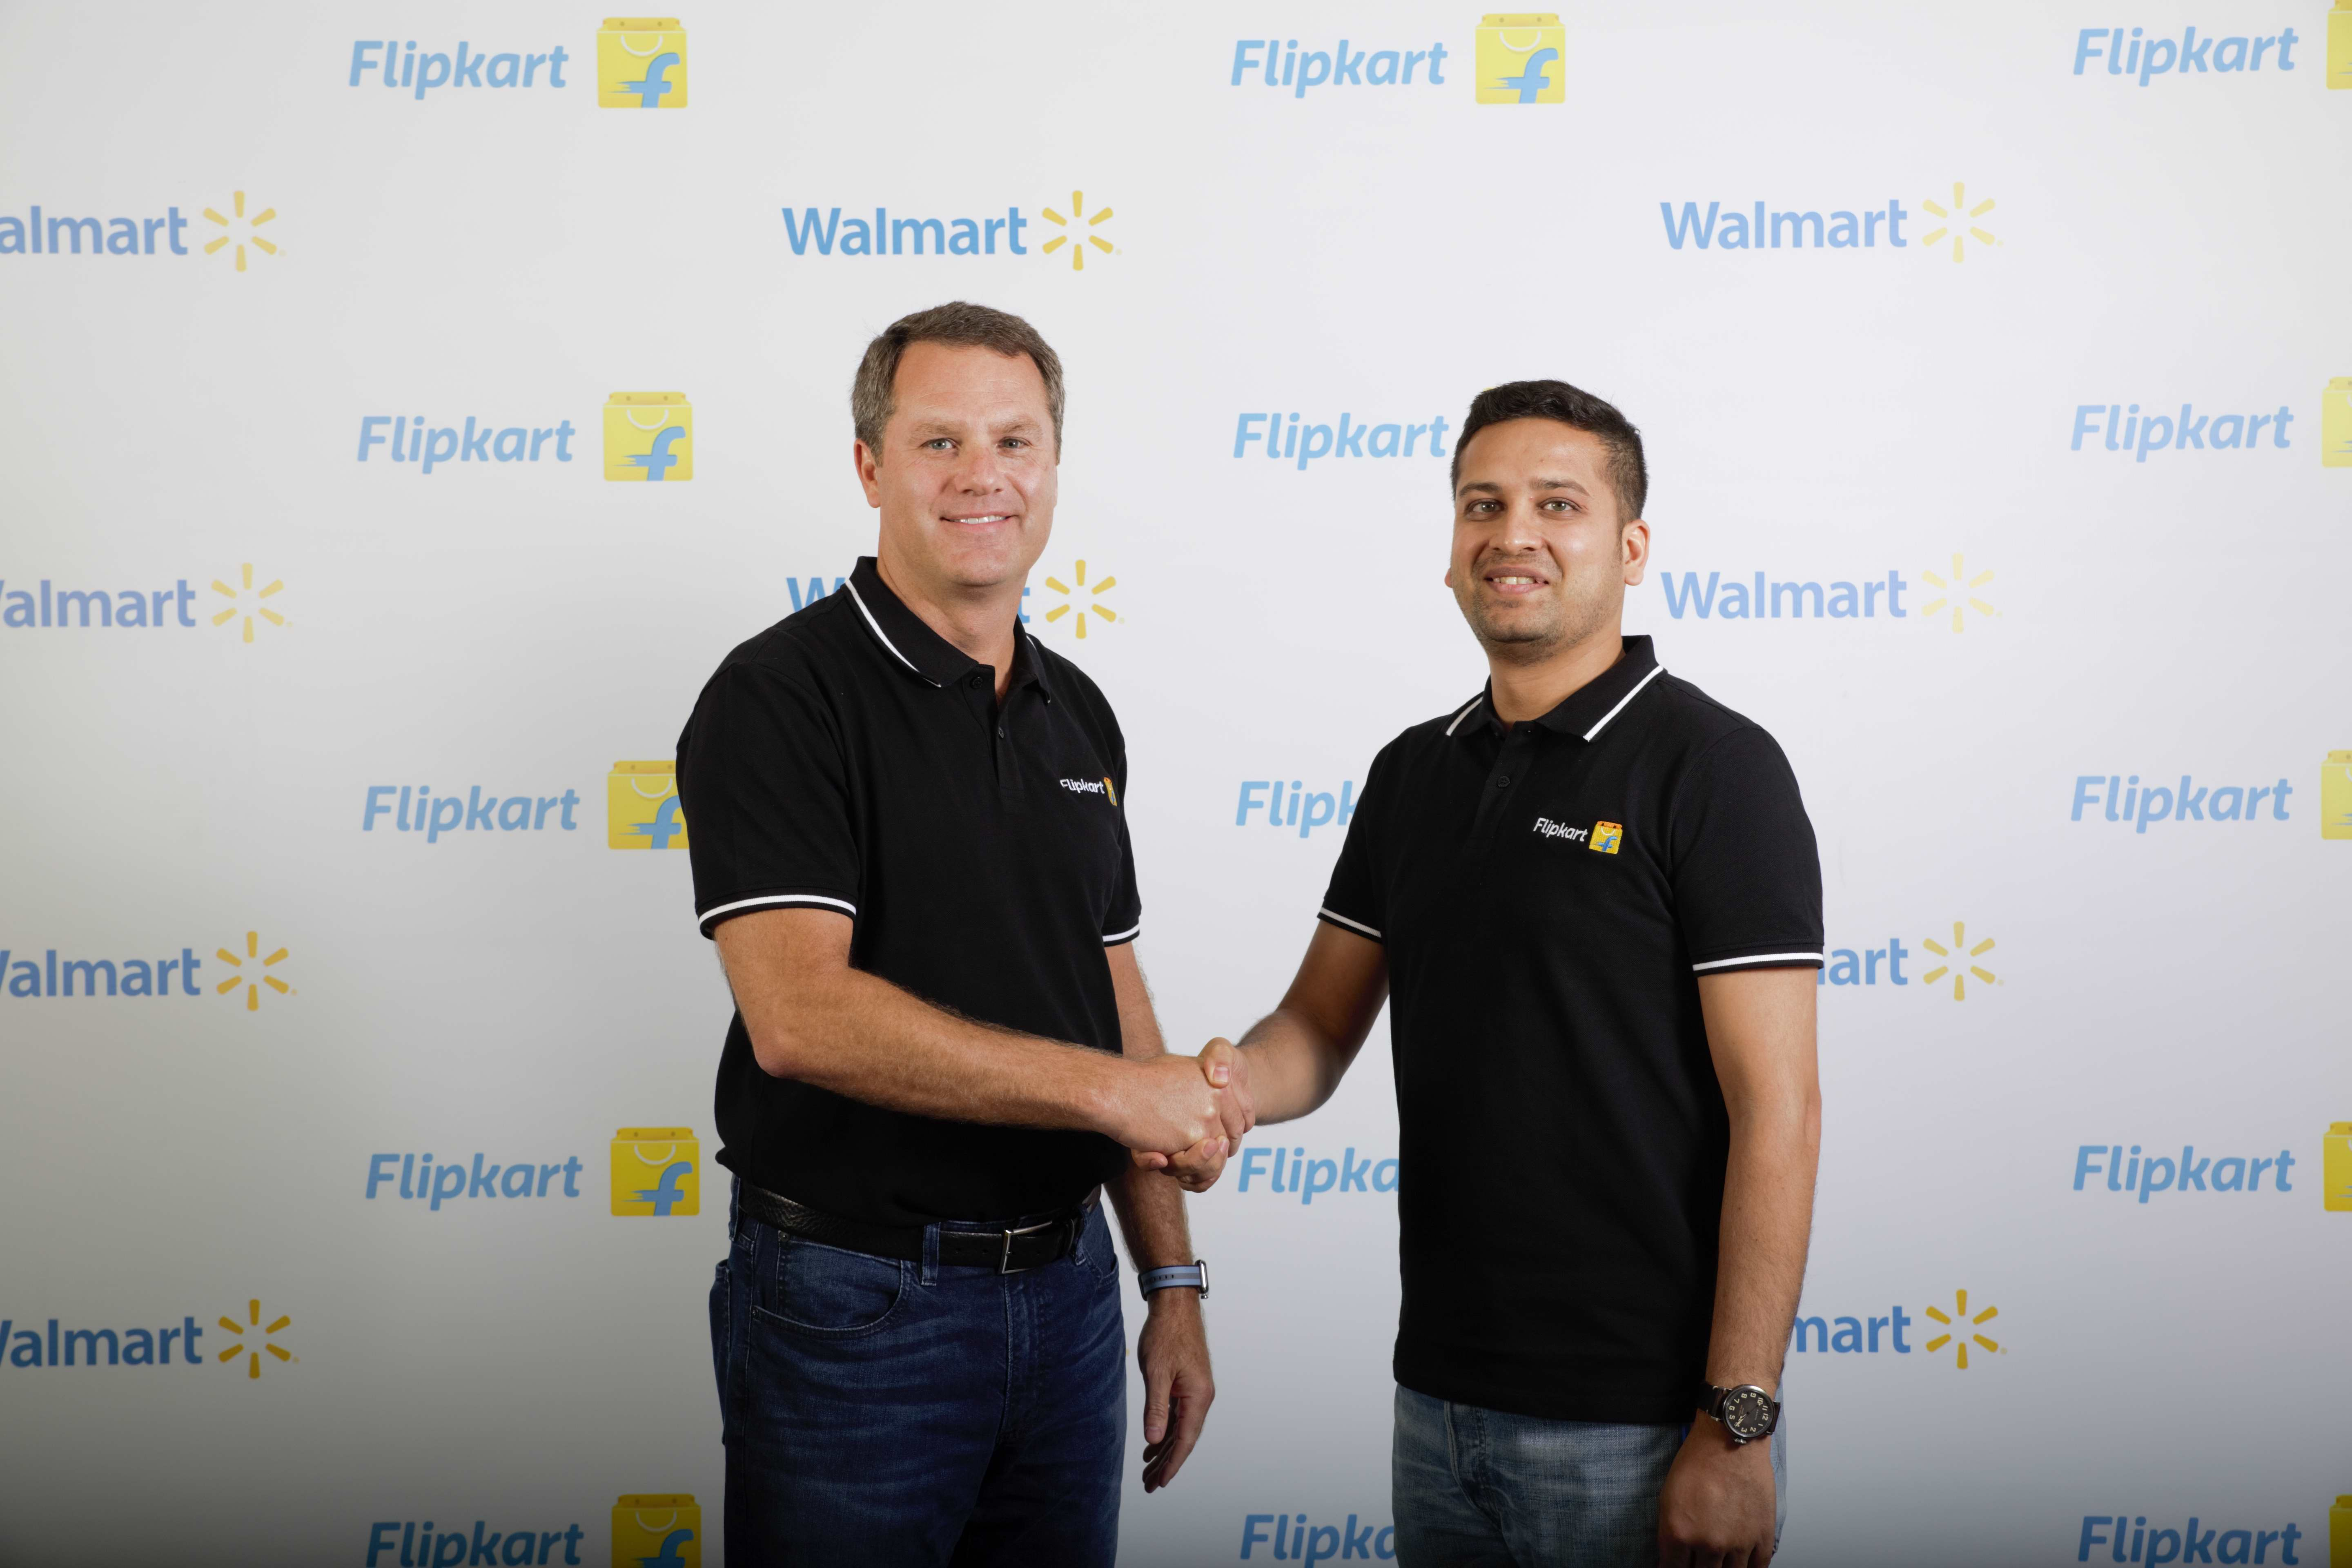 Walmart is buying India's Flipkart, Softbank CEO confirms